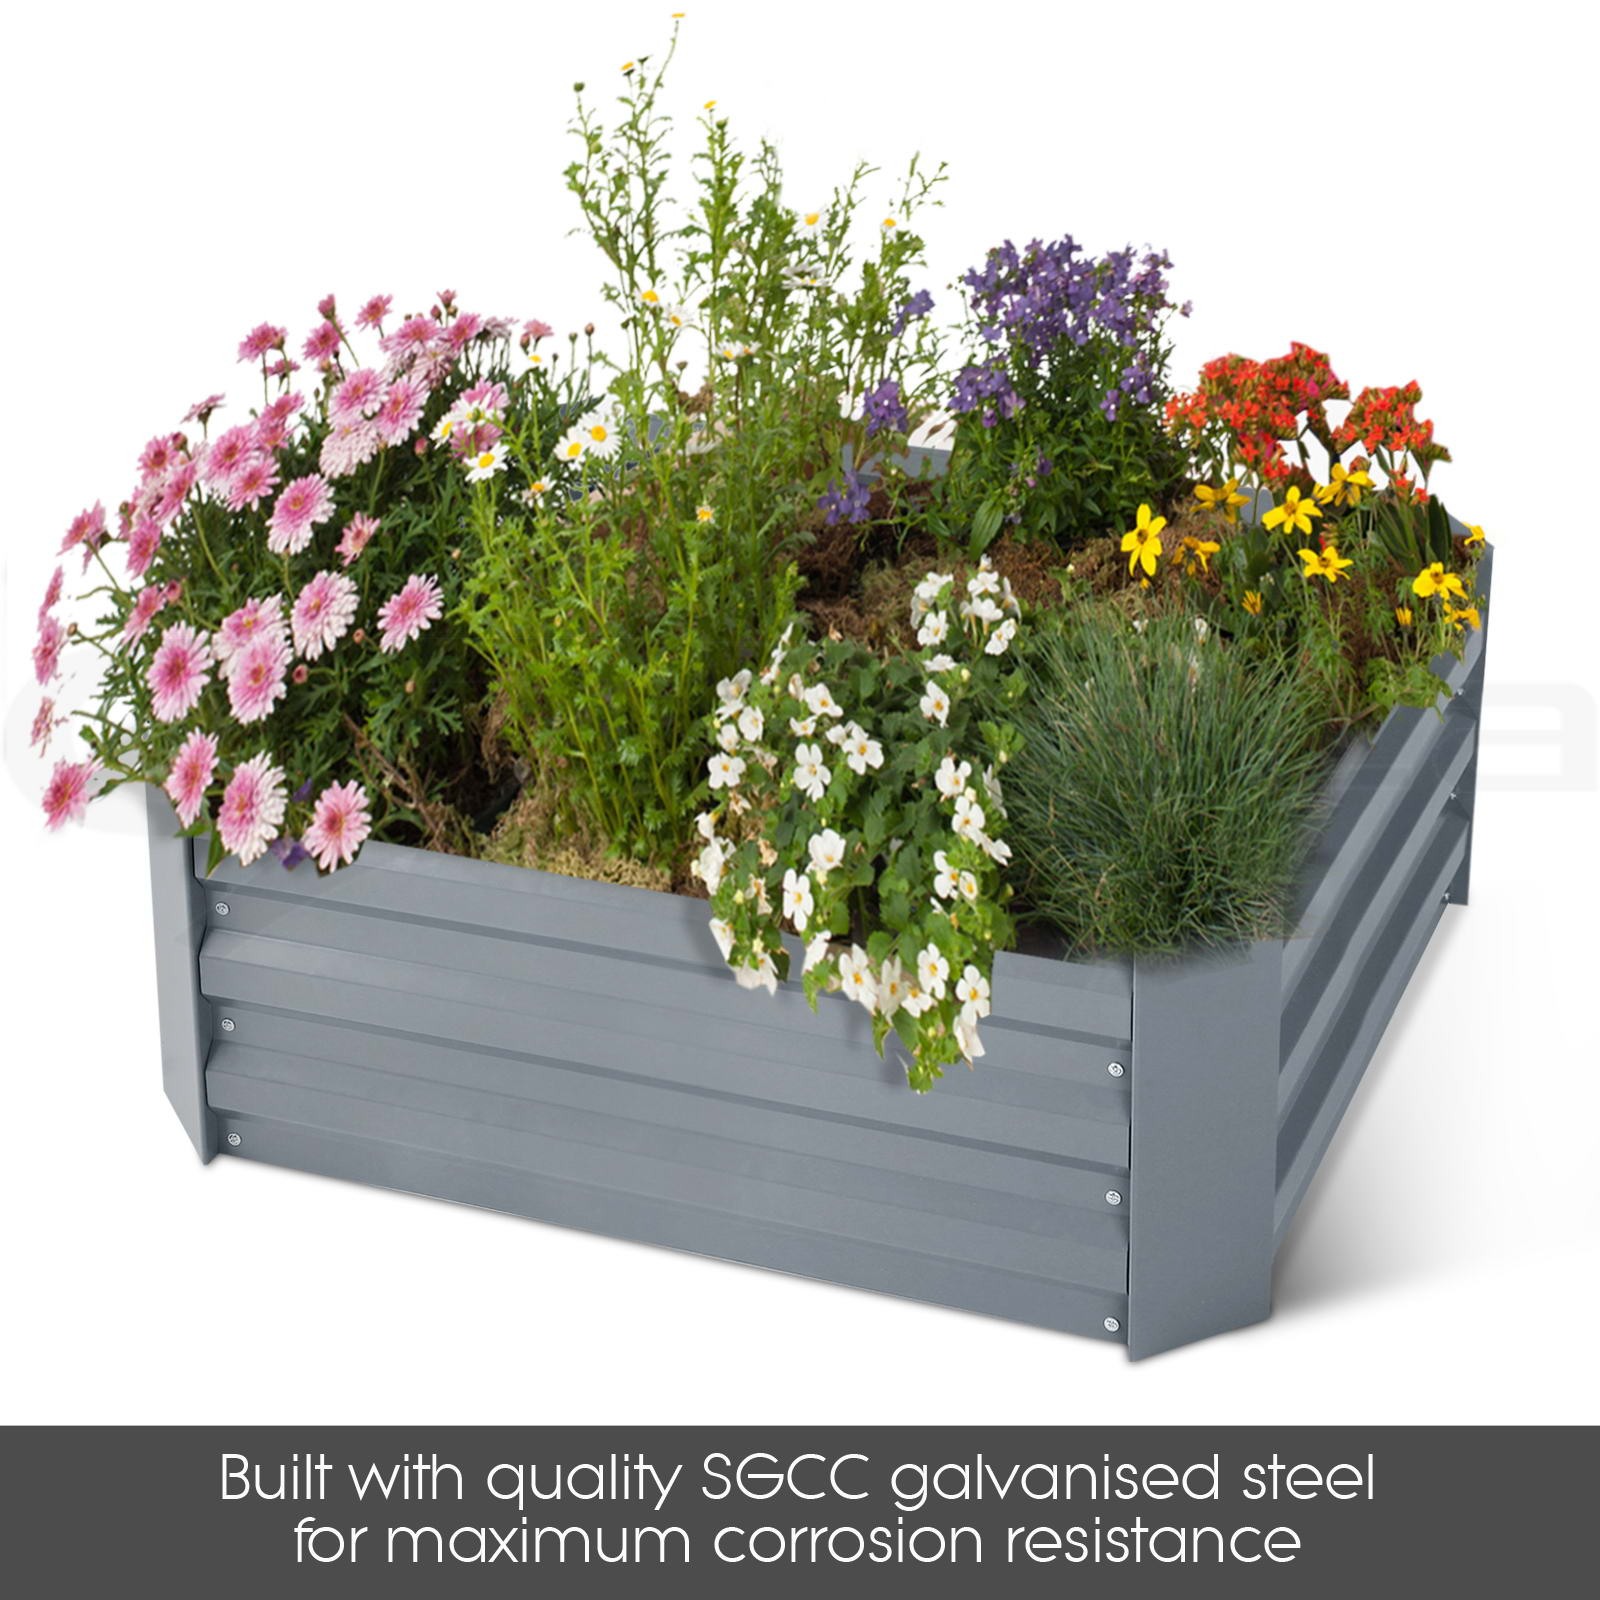 Rectangle Raised Flower Box Planter Bed 2 Tier Soil Pots: Galvanised Steel Raised Garden Bed Instant Planter Square